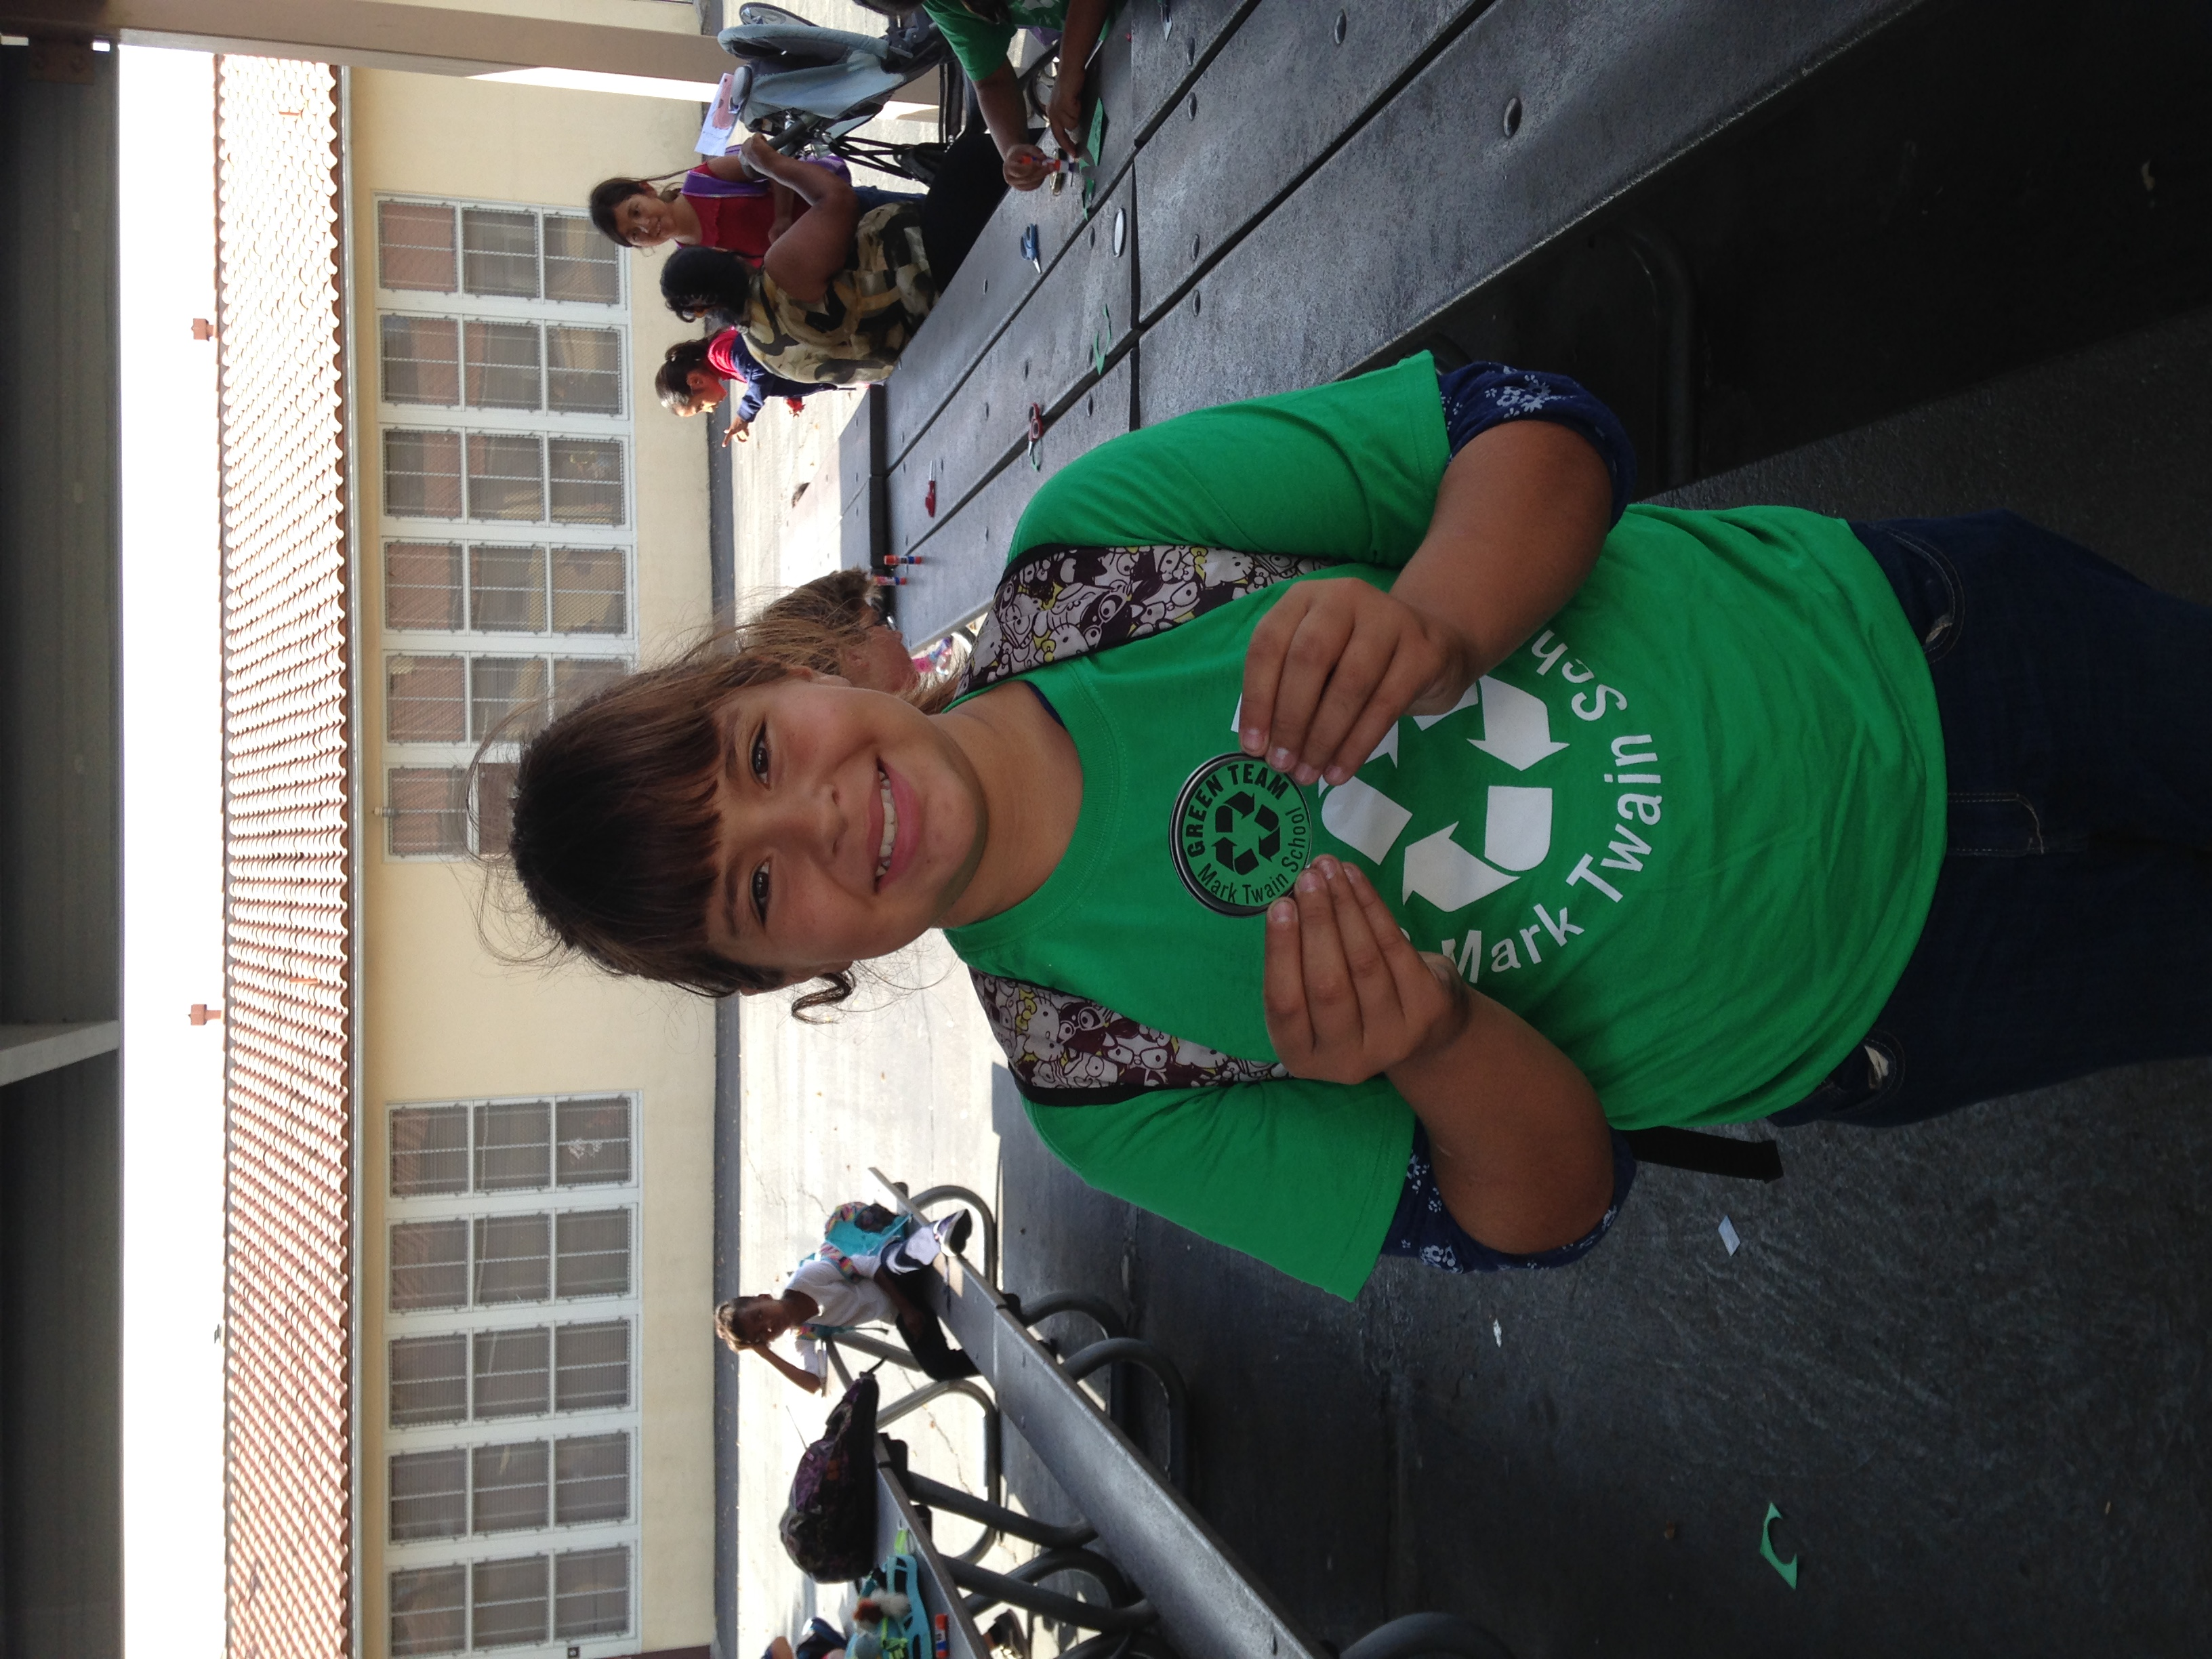 green team clean event